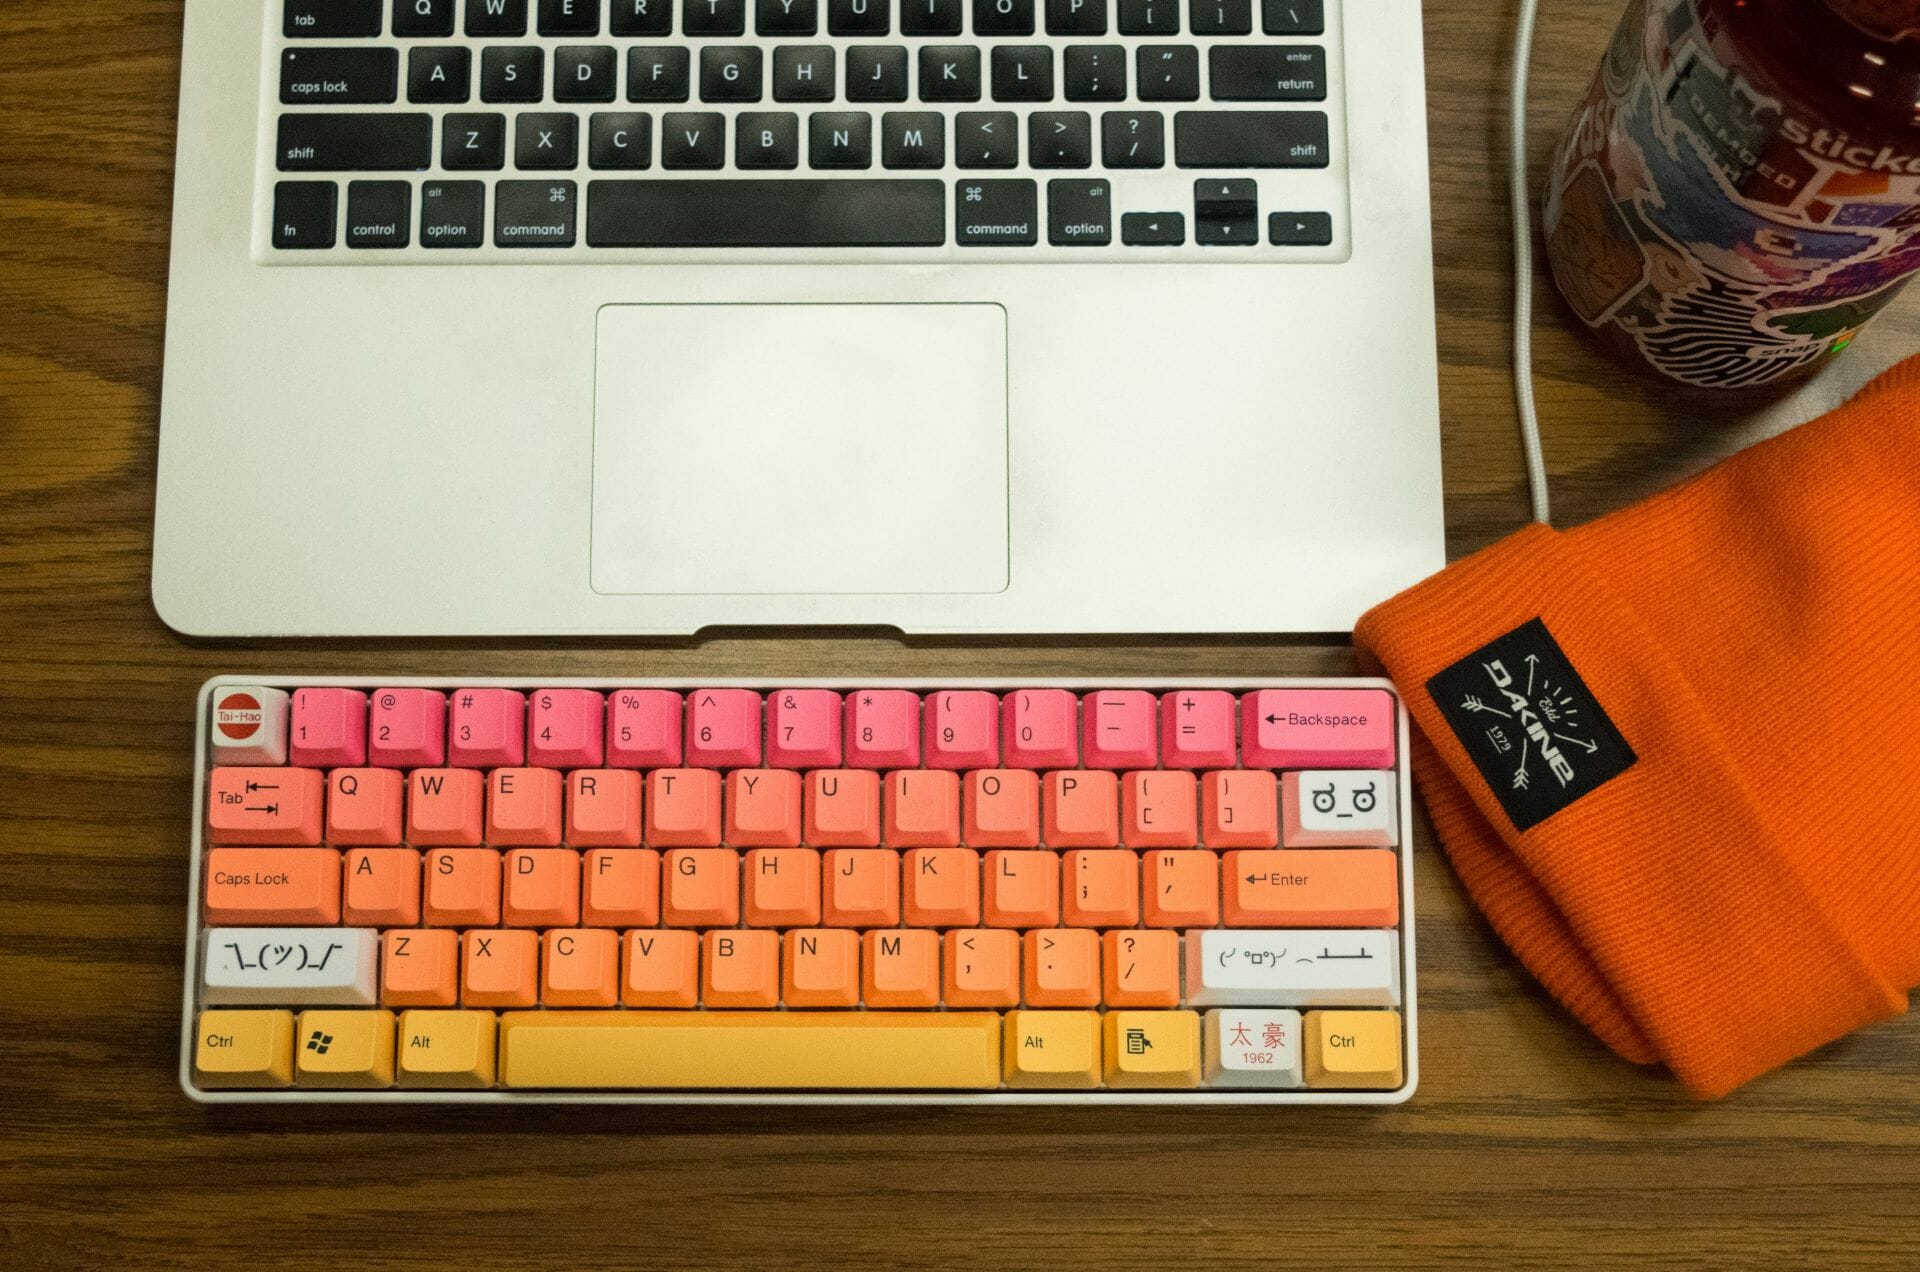 multicolored keyboard and laptop